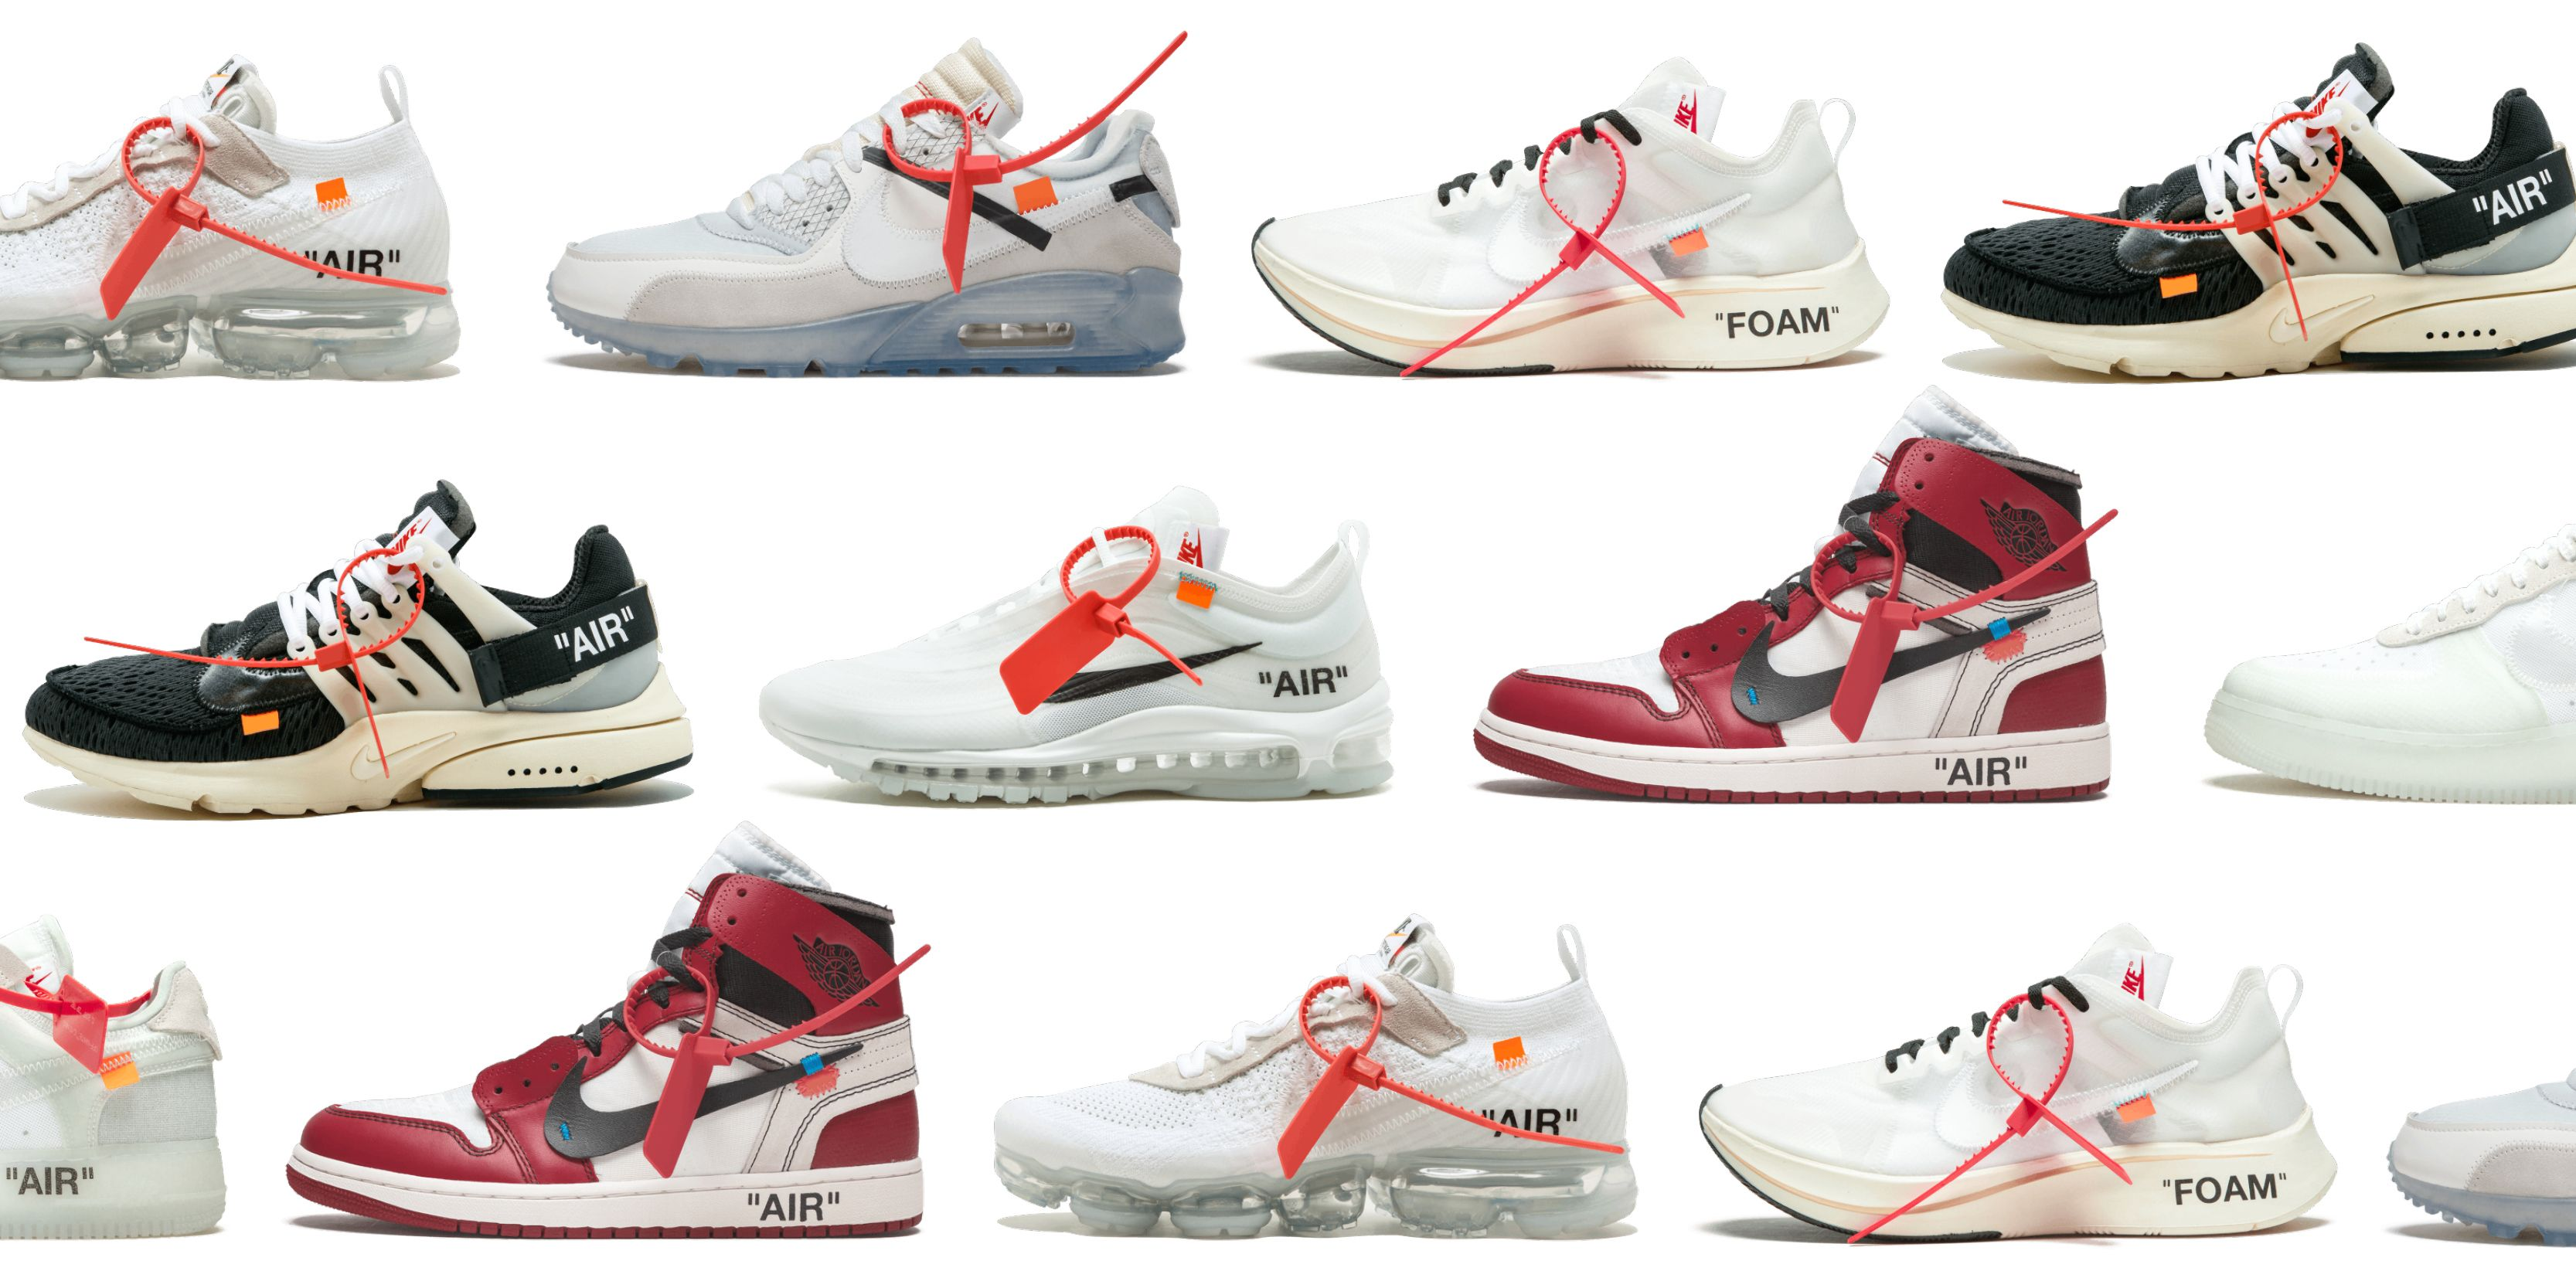 best nike off white shoes nike off white releases 2019 style nike off white shoes sneaker men f�r herren online kaufen